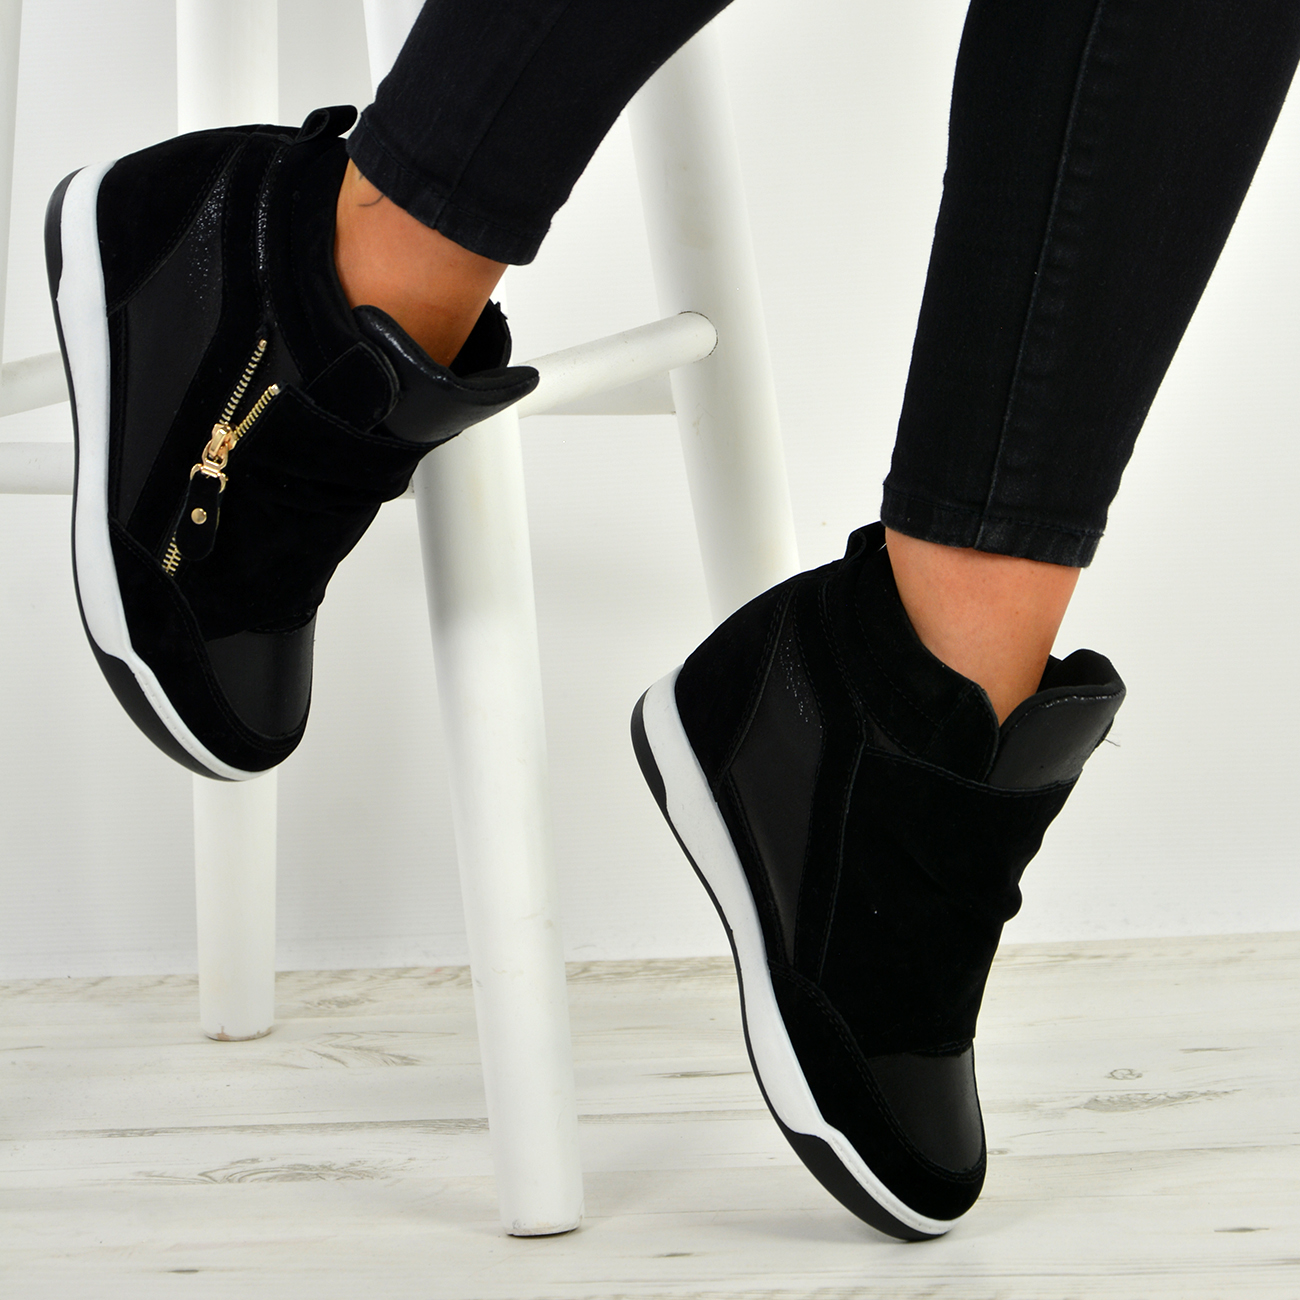 New-Womens-Wedge-Heel-Trainers-Ladies-Hightop-Ankle-Boots-Shoes-Size-Uk-3-8